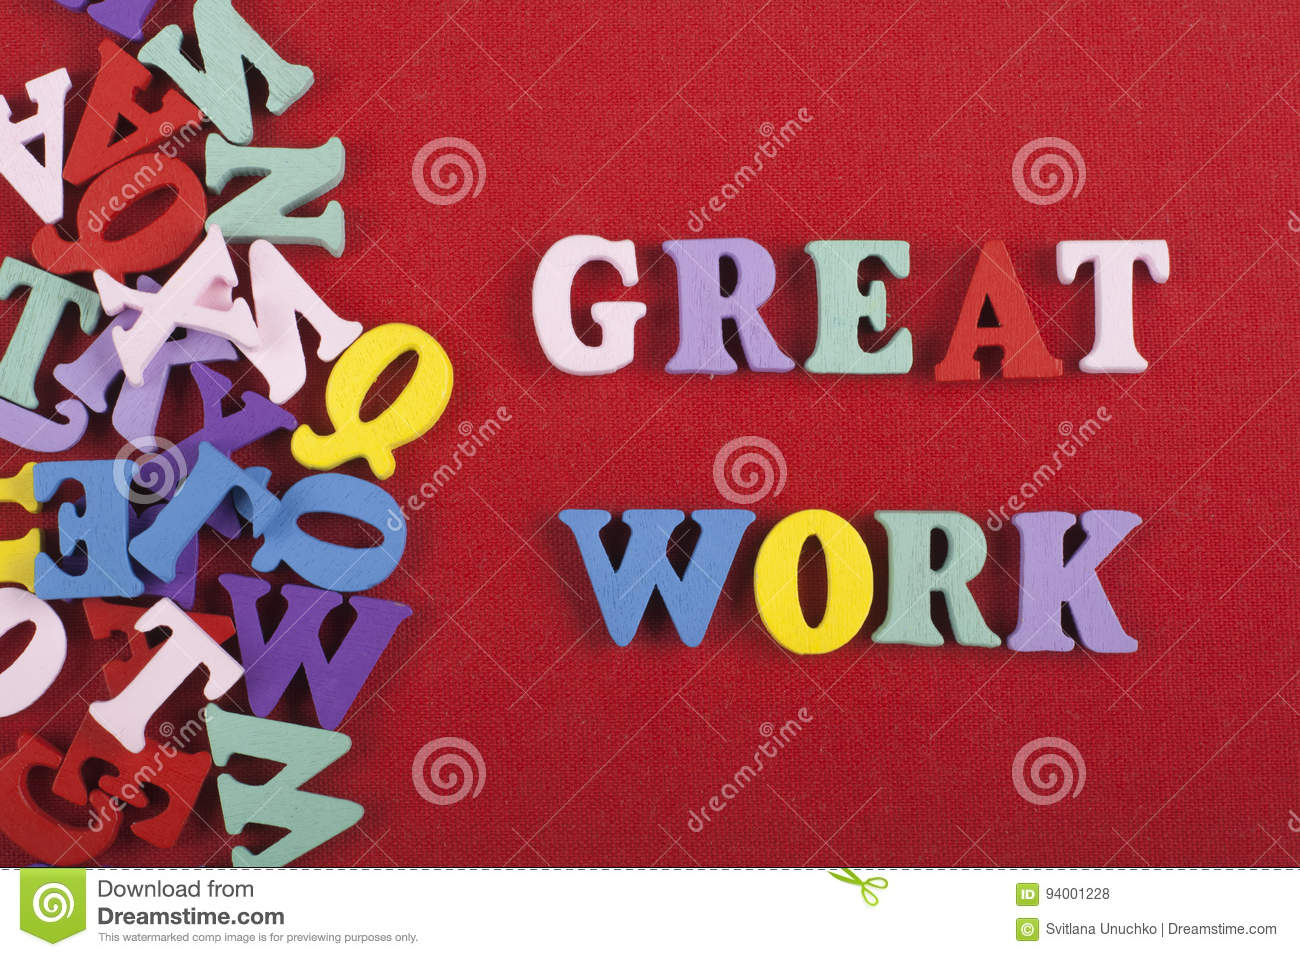 great work word on red background composed from colorful abc